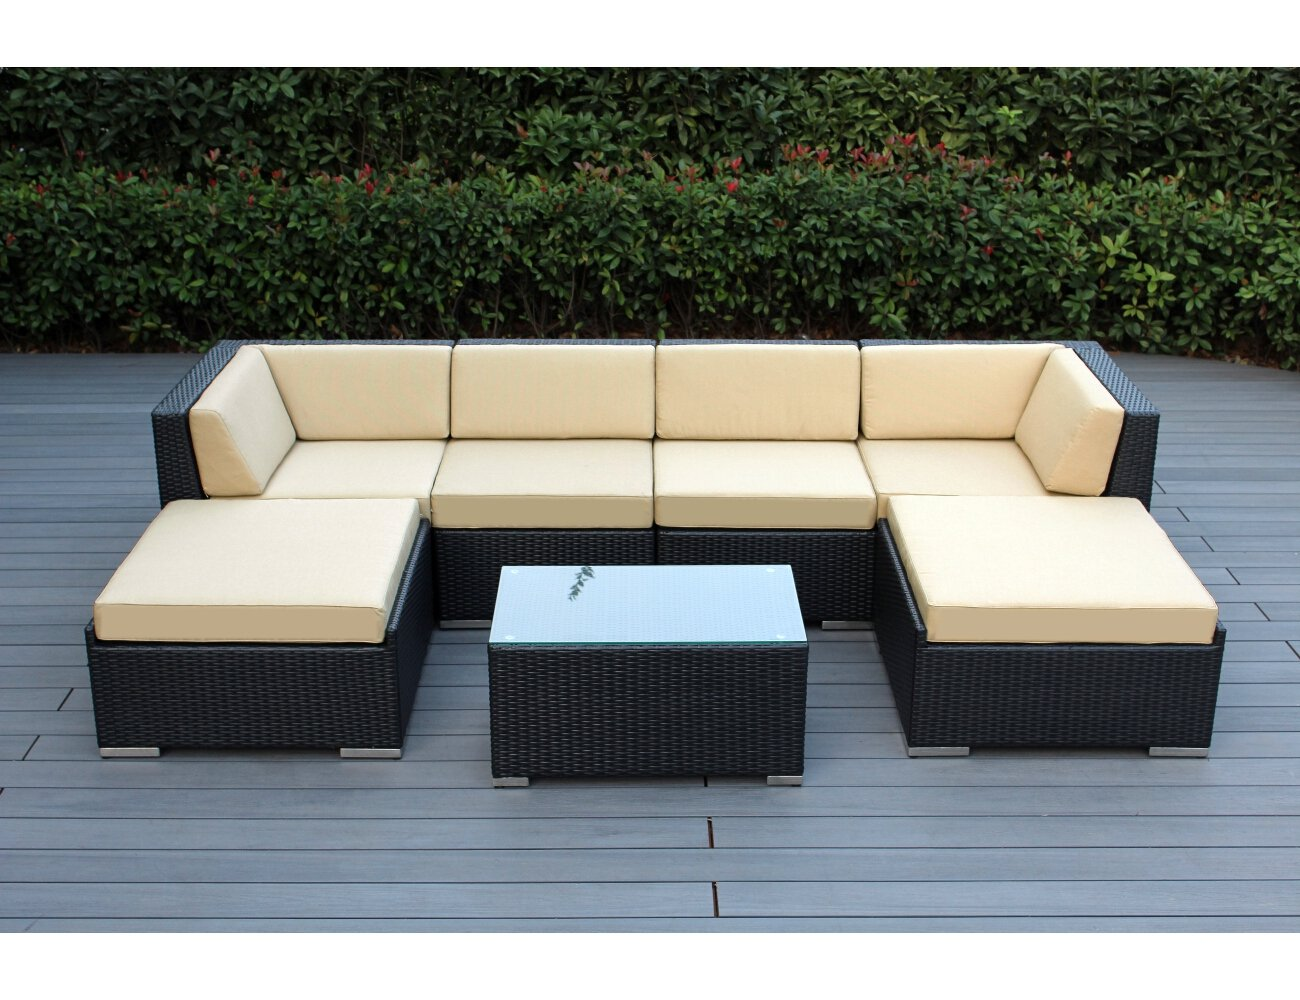 Wicker patio furniture sets weatherproof outdoor living for Outdoor furniture wicker